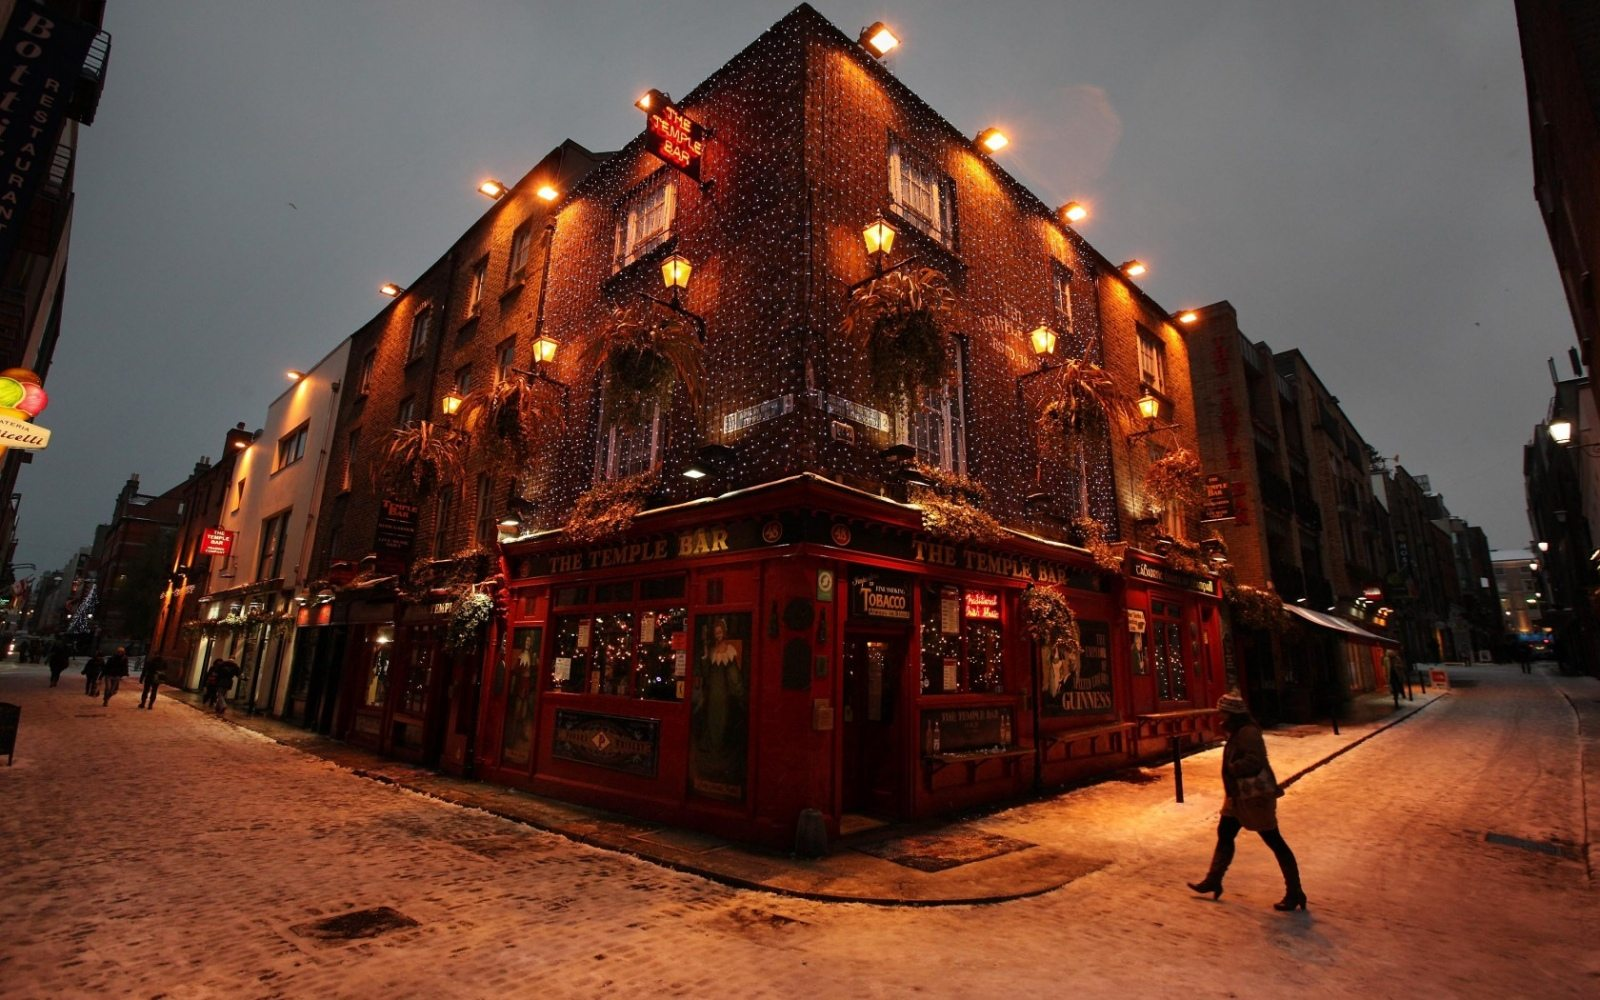 Things to do in December in Dublin